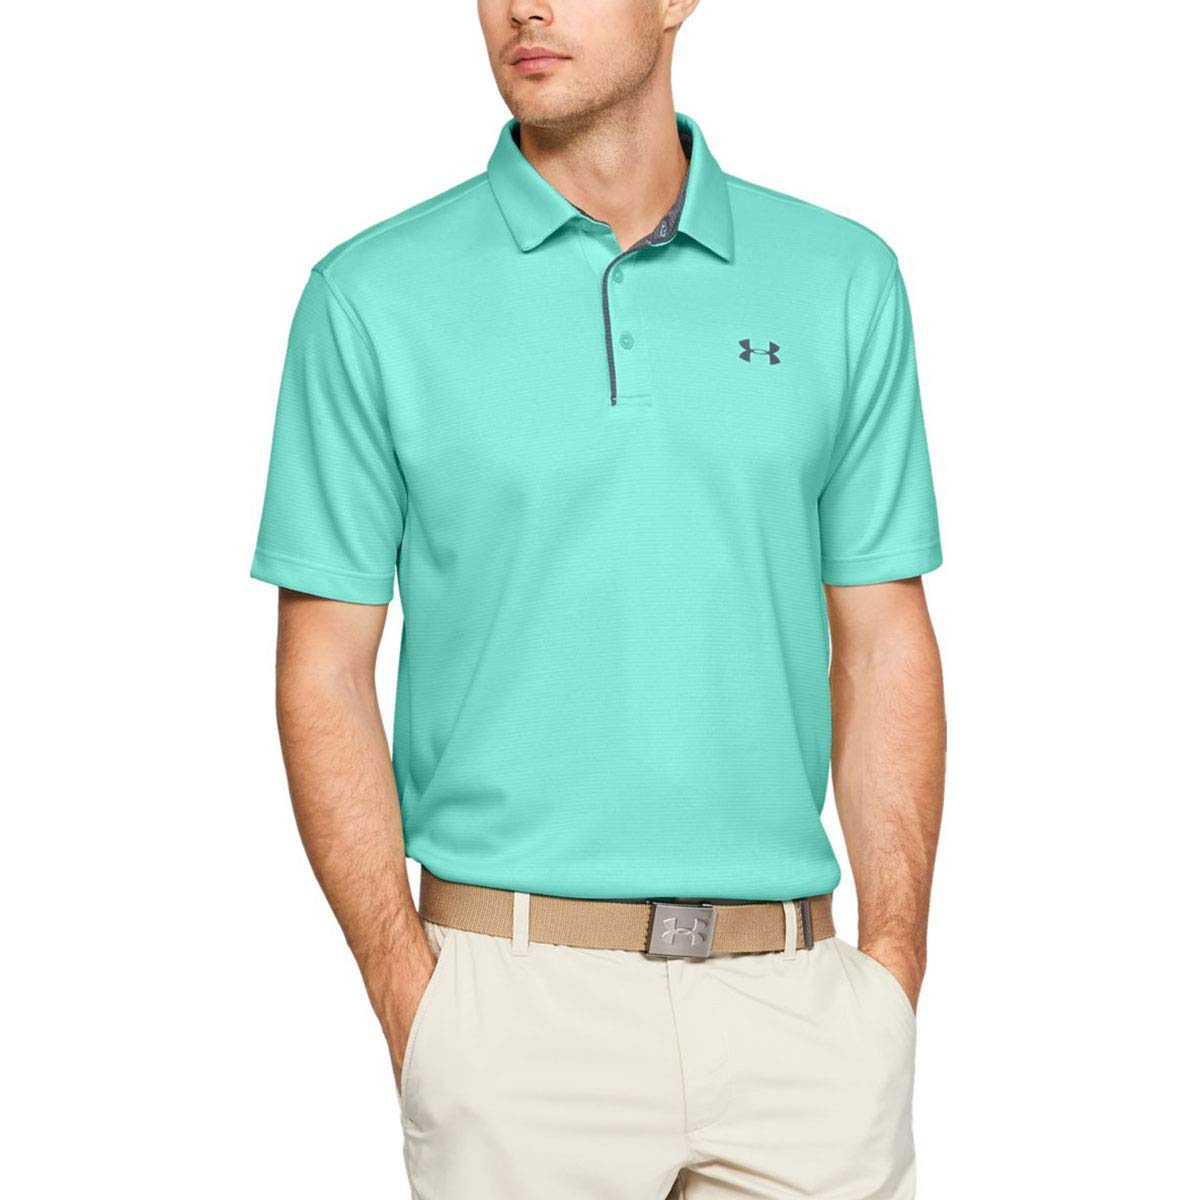 adc584849 Galleon - Under Armour Men s Tech Polo